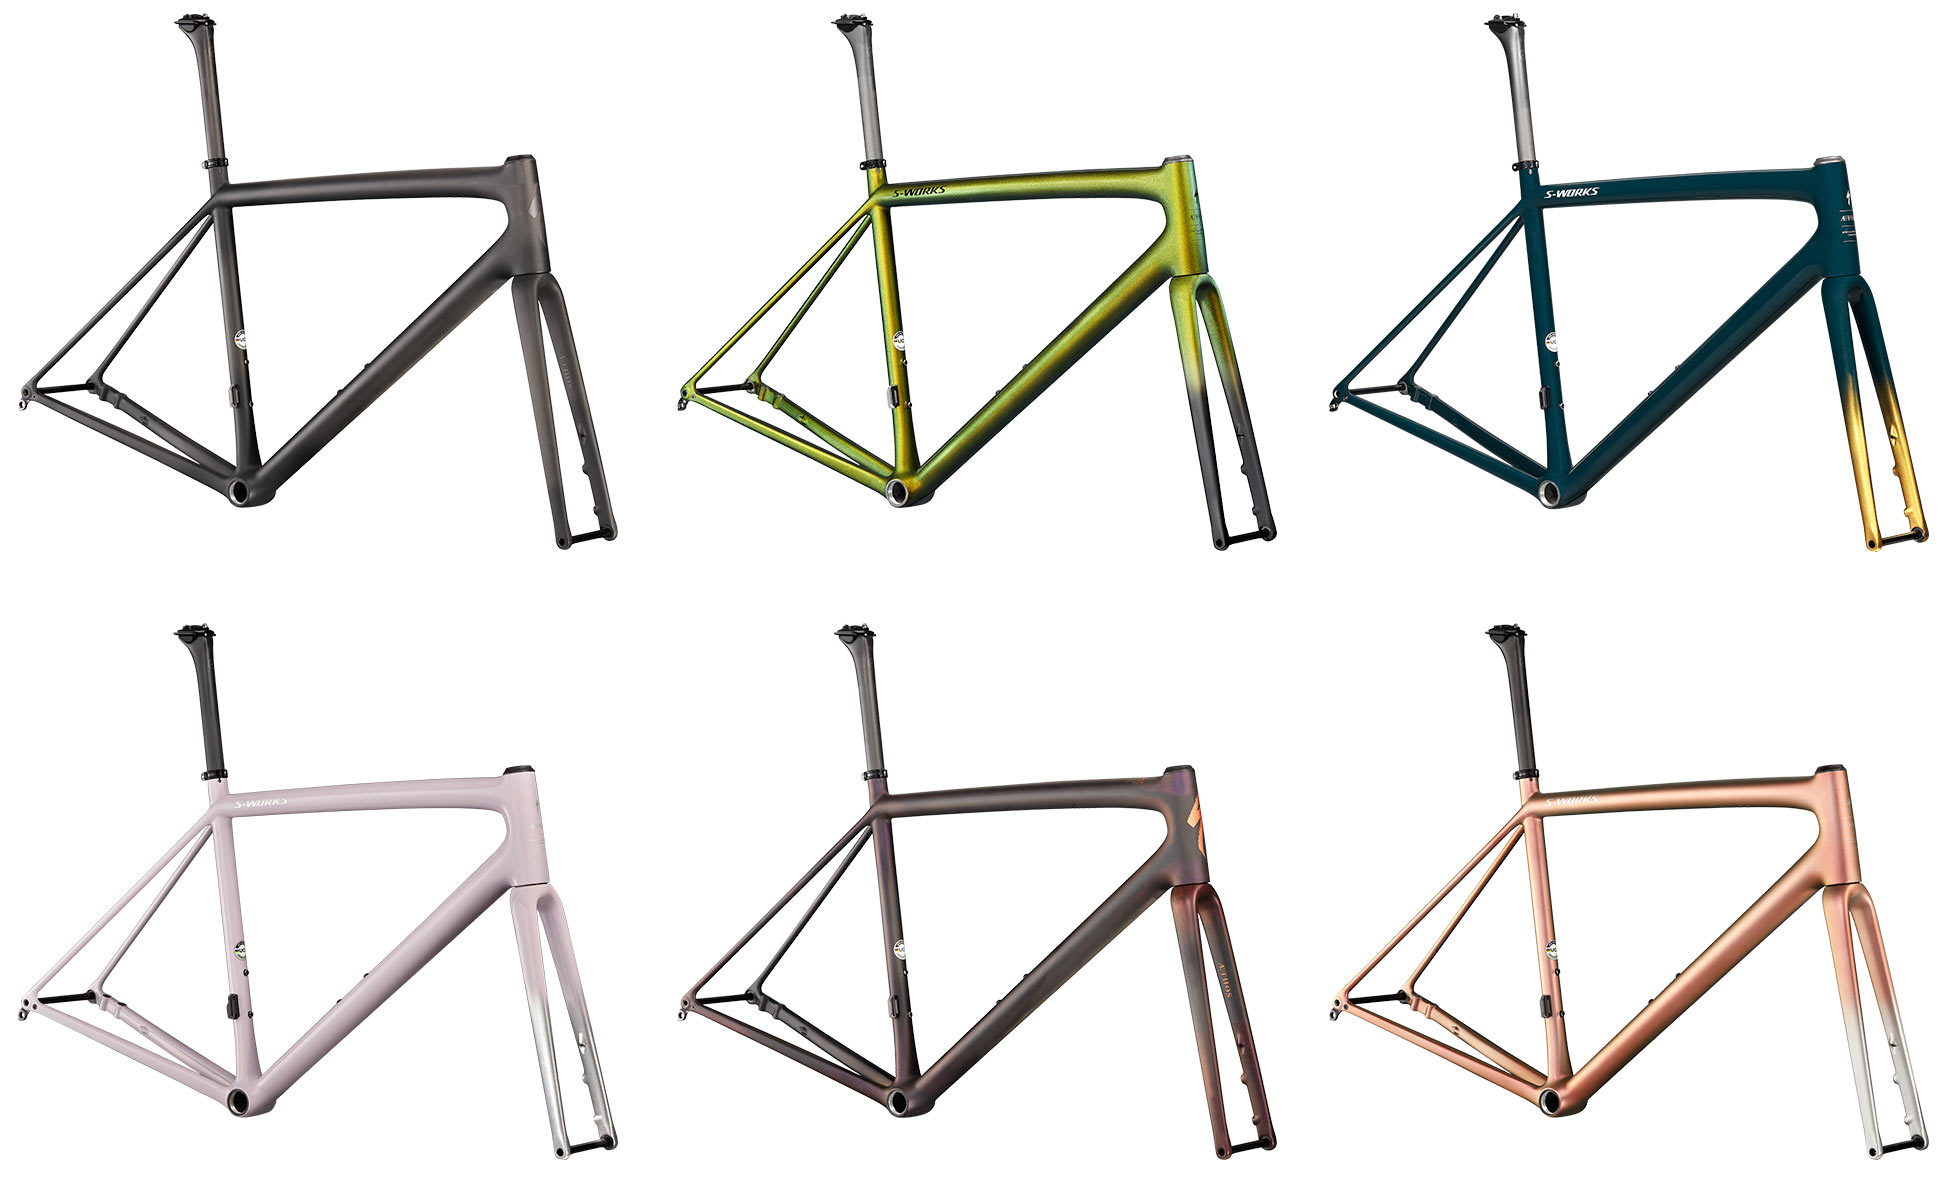 paint color options for the Specialized Aethos S-Works road bikes and framesets